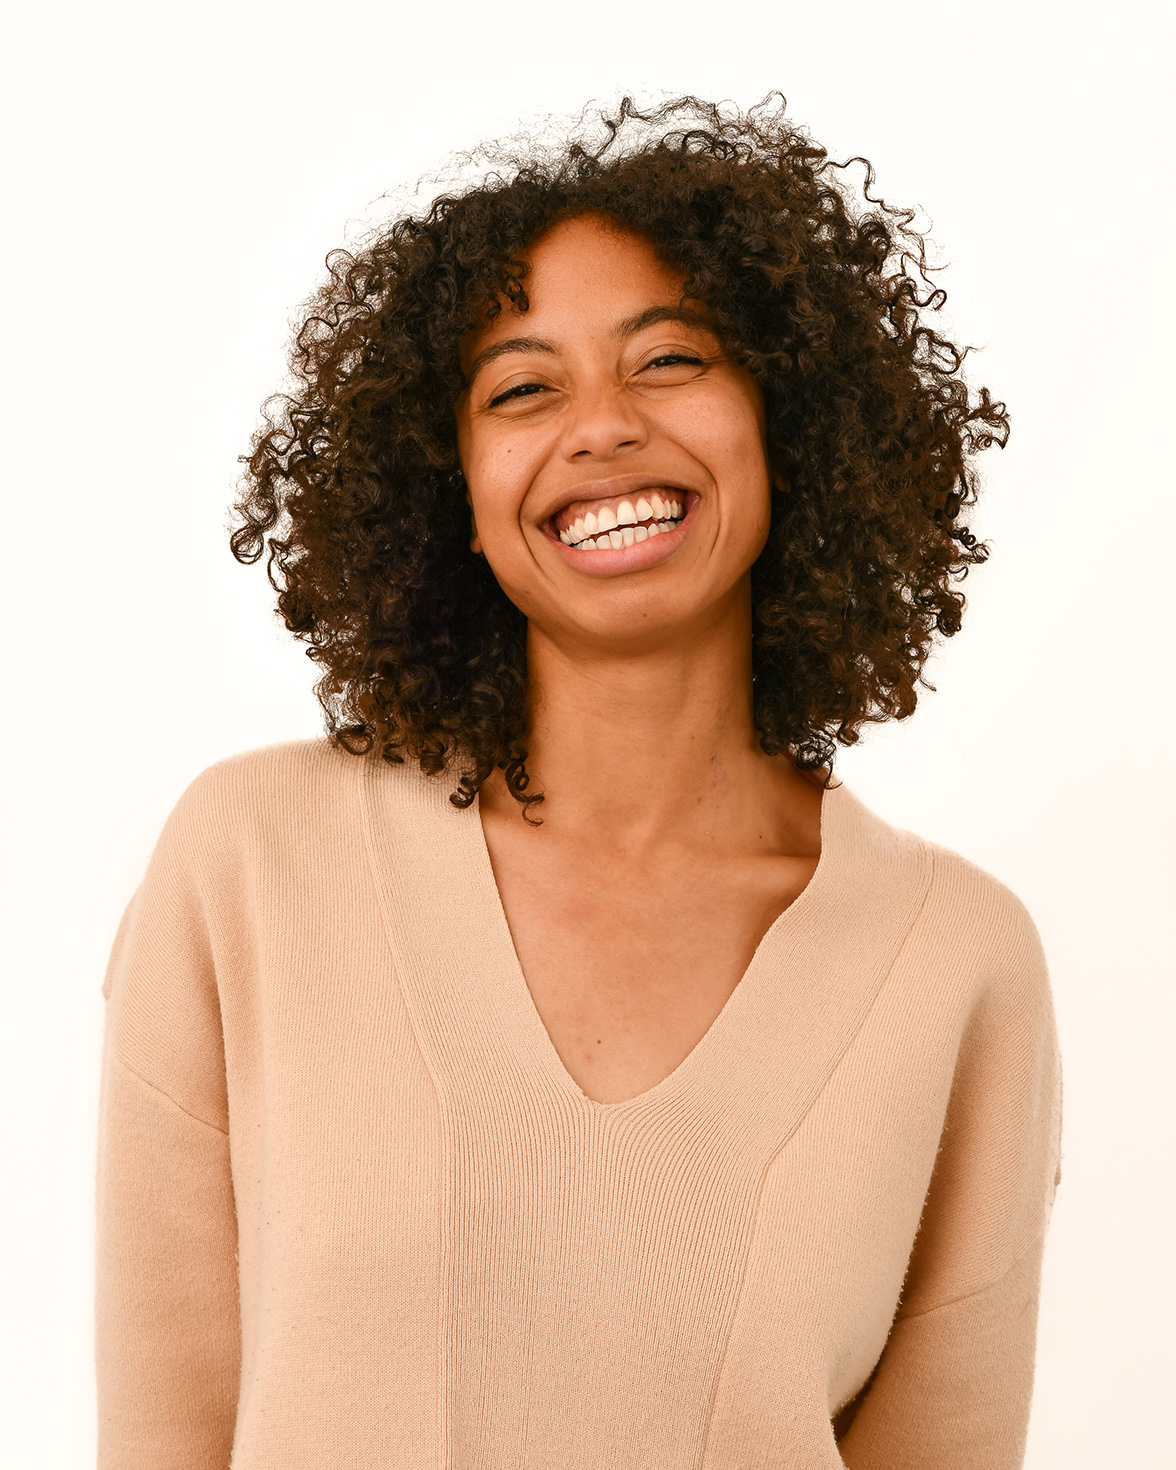 Smiling person with curly brown hair poses in a tan top